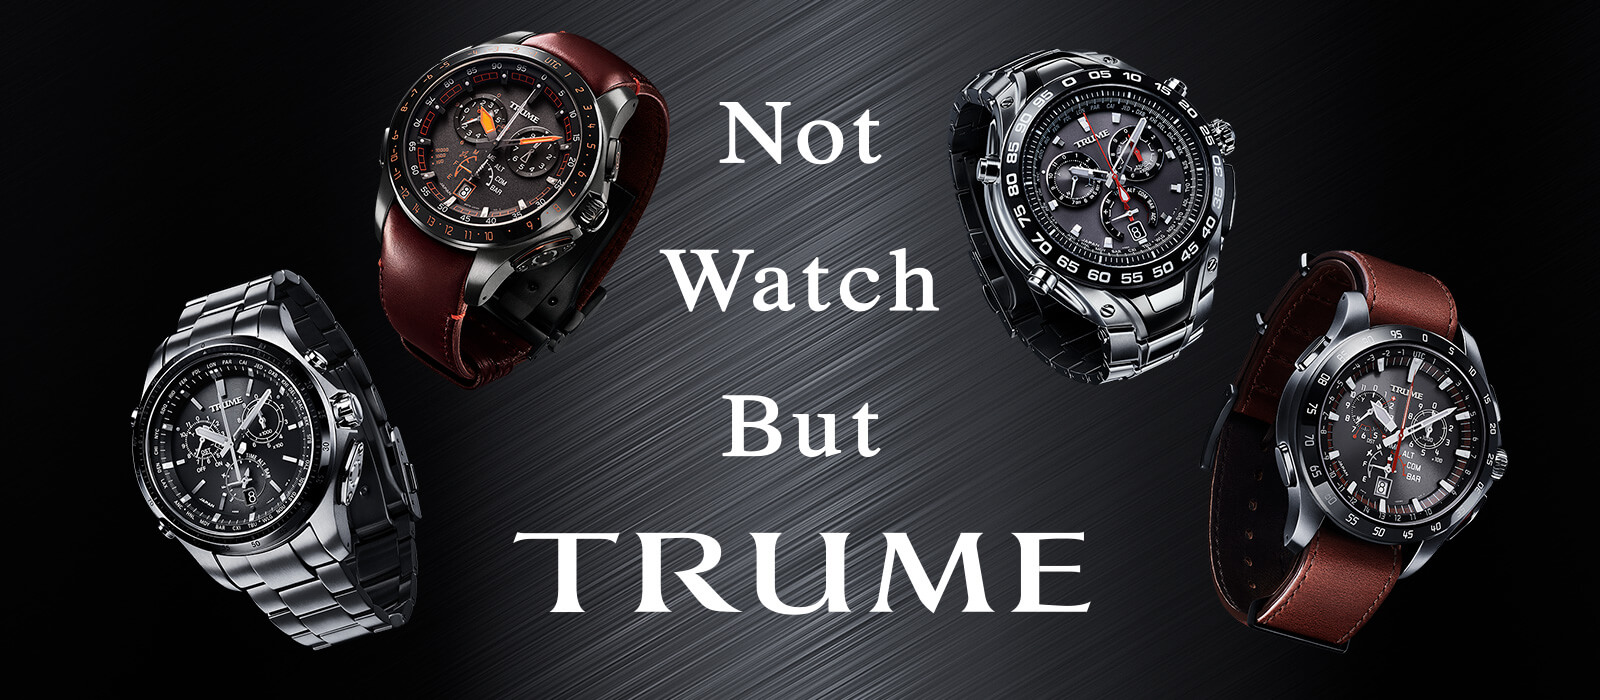 Not Watch But TRUME